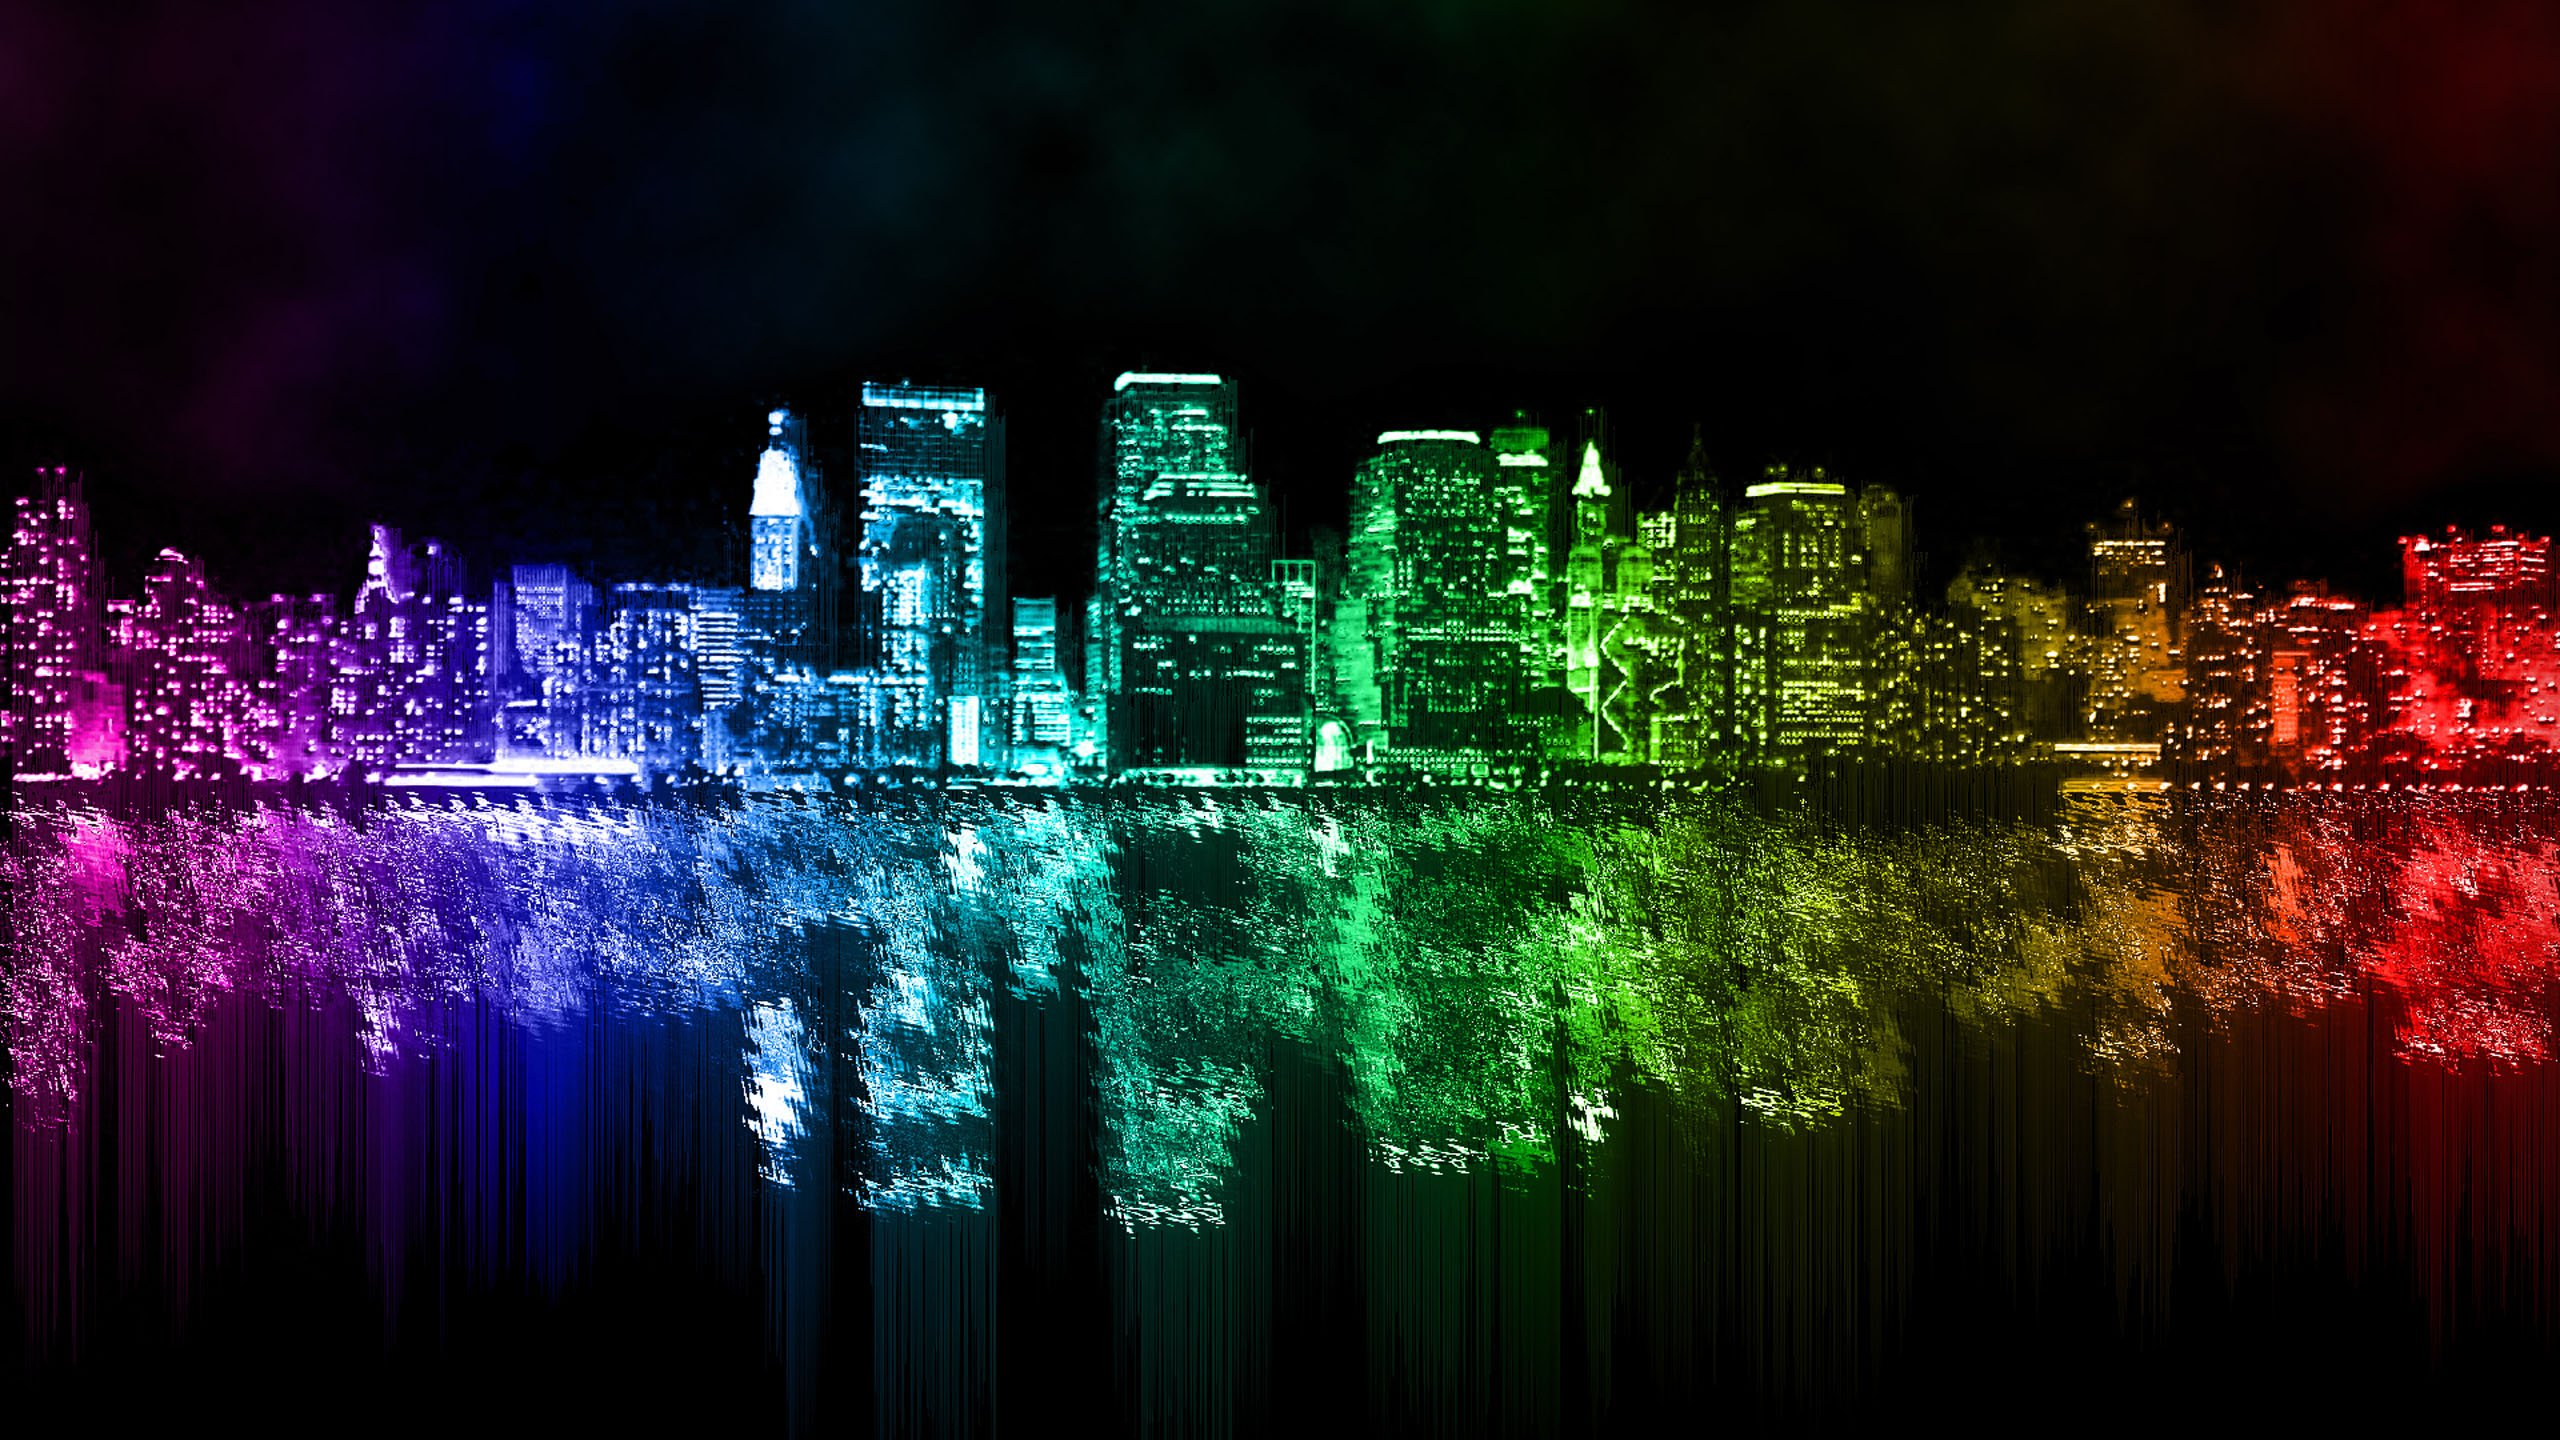 New York City Skyline At Night Wallpaper Space Wallpapers In Toplist 2560x1440